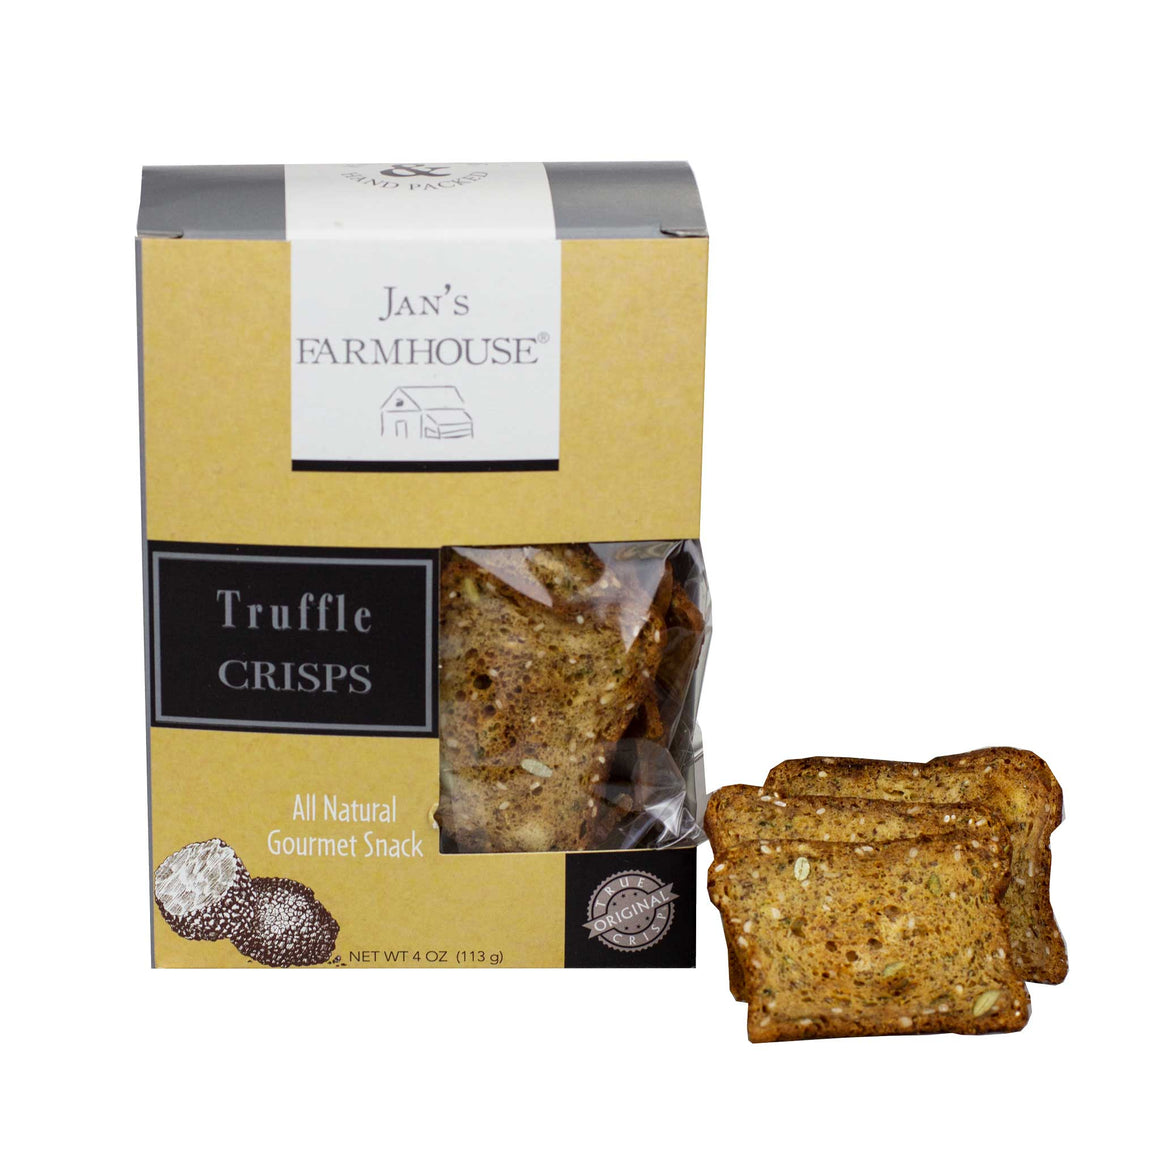 Jan's Farmhouse Truffle Crisps